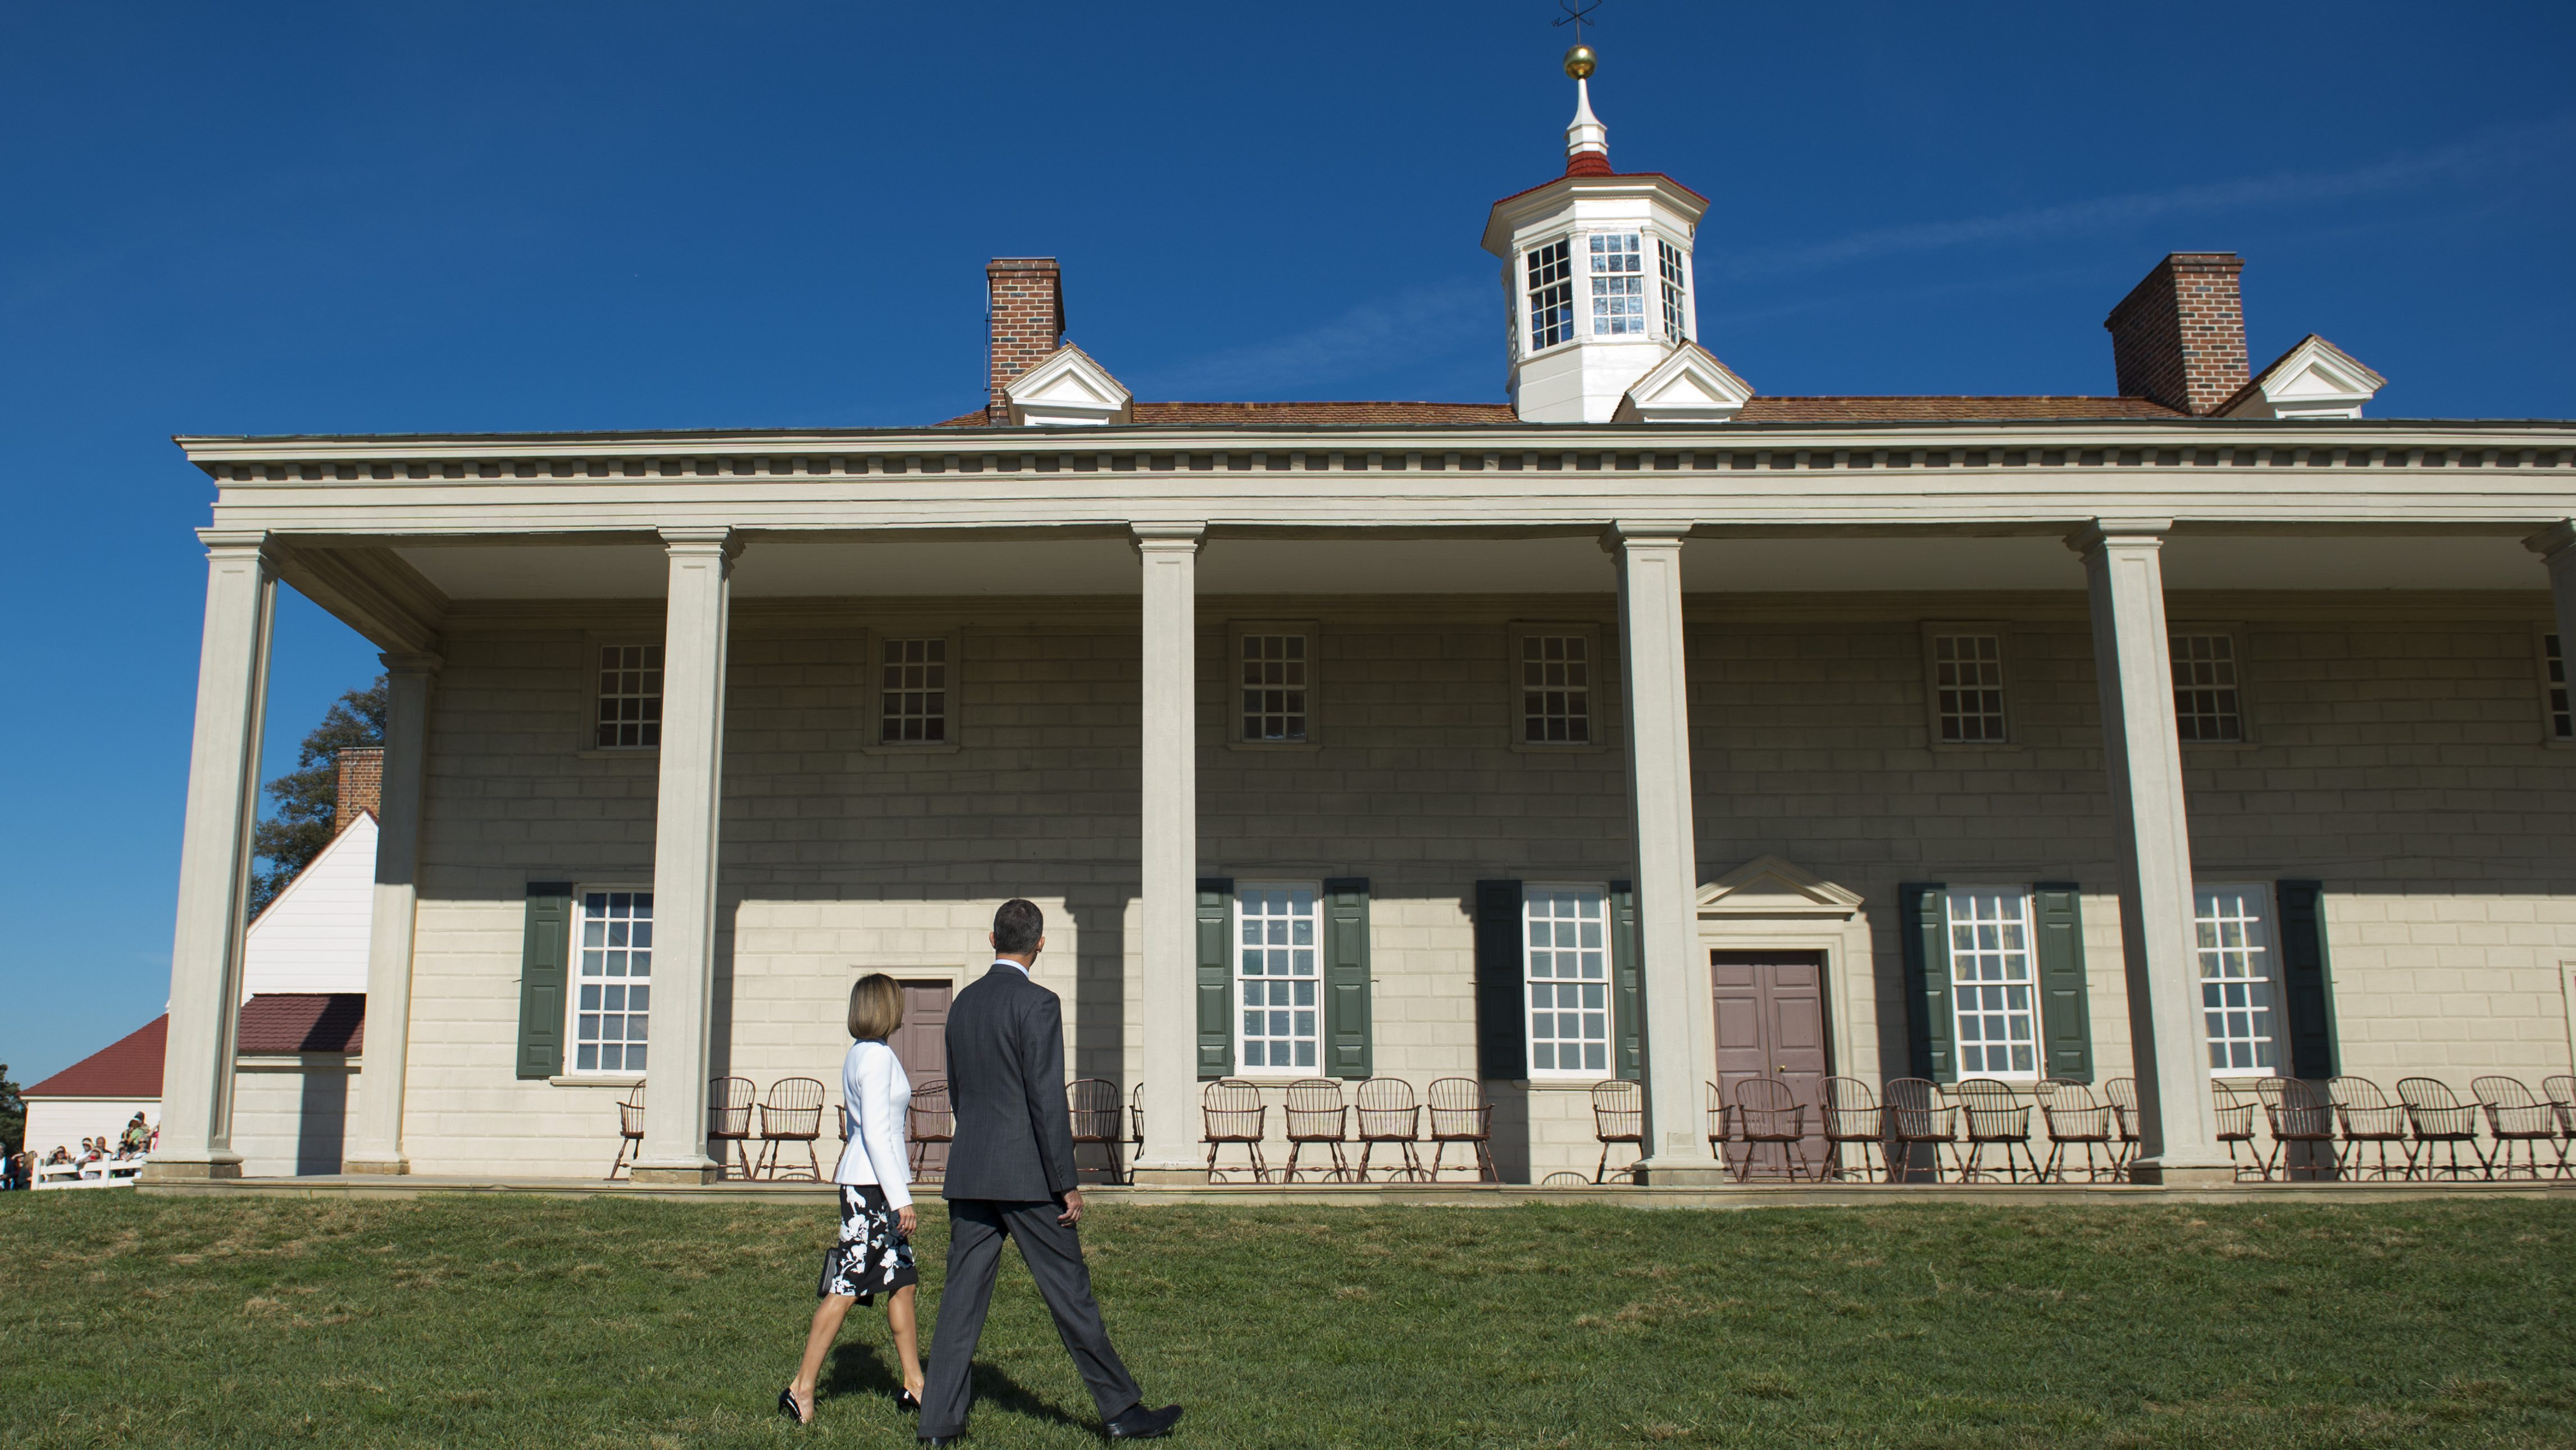 Spain's King Felipe VI and Queen Letizia visit George Washington's Mount Vernon, Va., home, Tuesday, Sept. 15, 2015,  where they laid a wreath at the tomb of George and Martha Washington and toured George Washington's Mansion.  Queen Letizia of Spain celebrates her 43rd birthday Tuesday.  (AP Photo/Molly Riley)